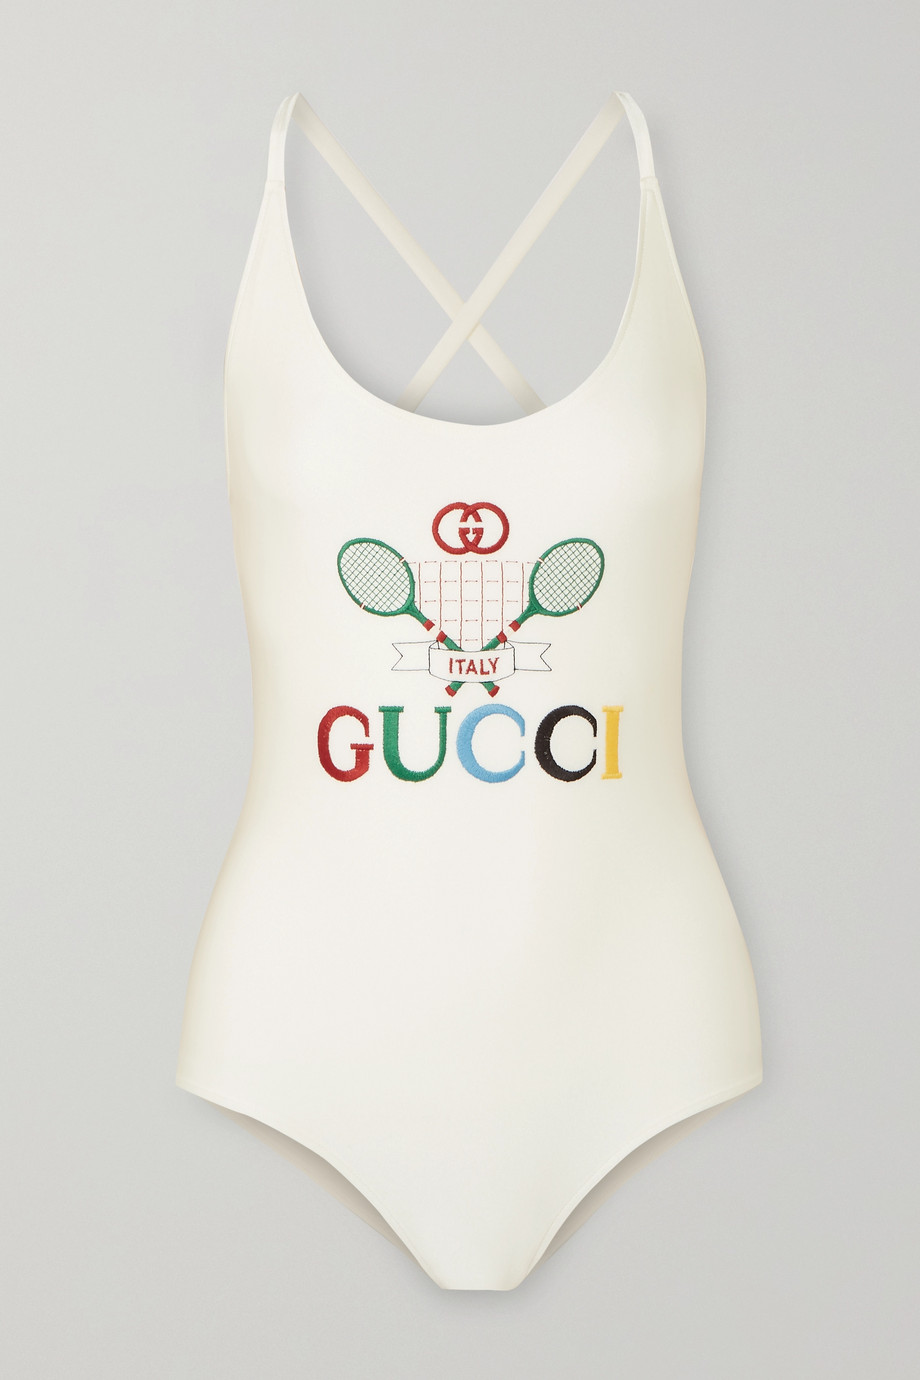 Gucci Embroidered stretch bodysuit